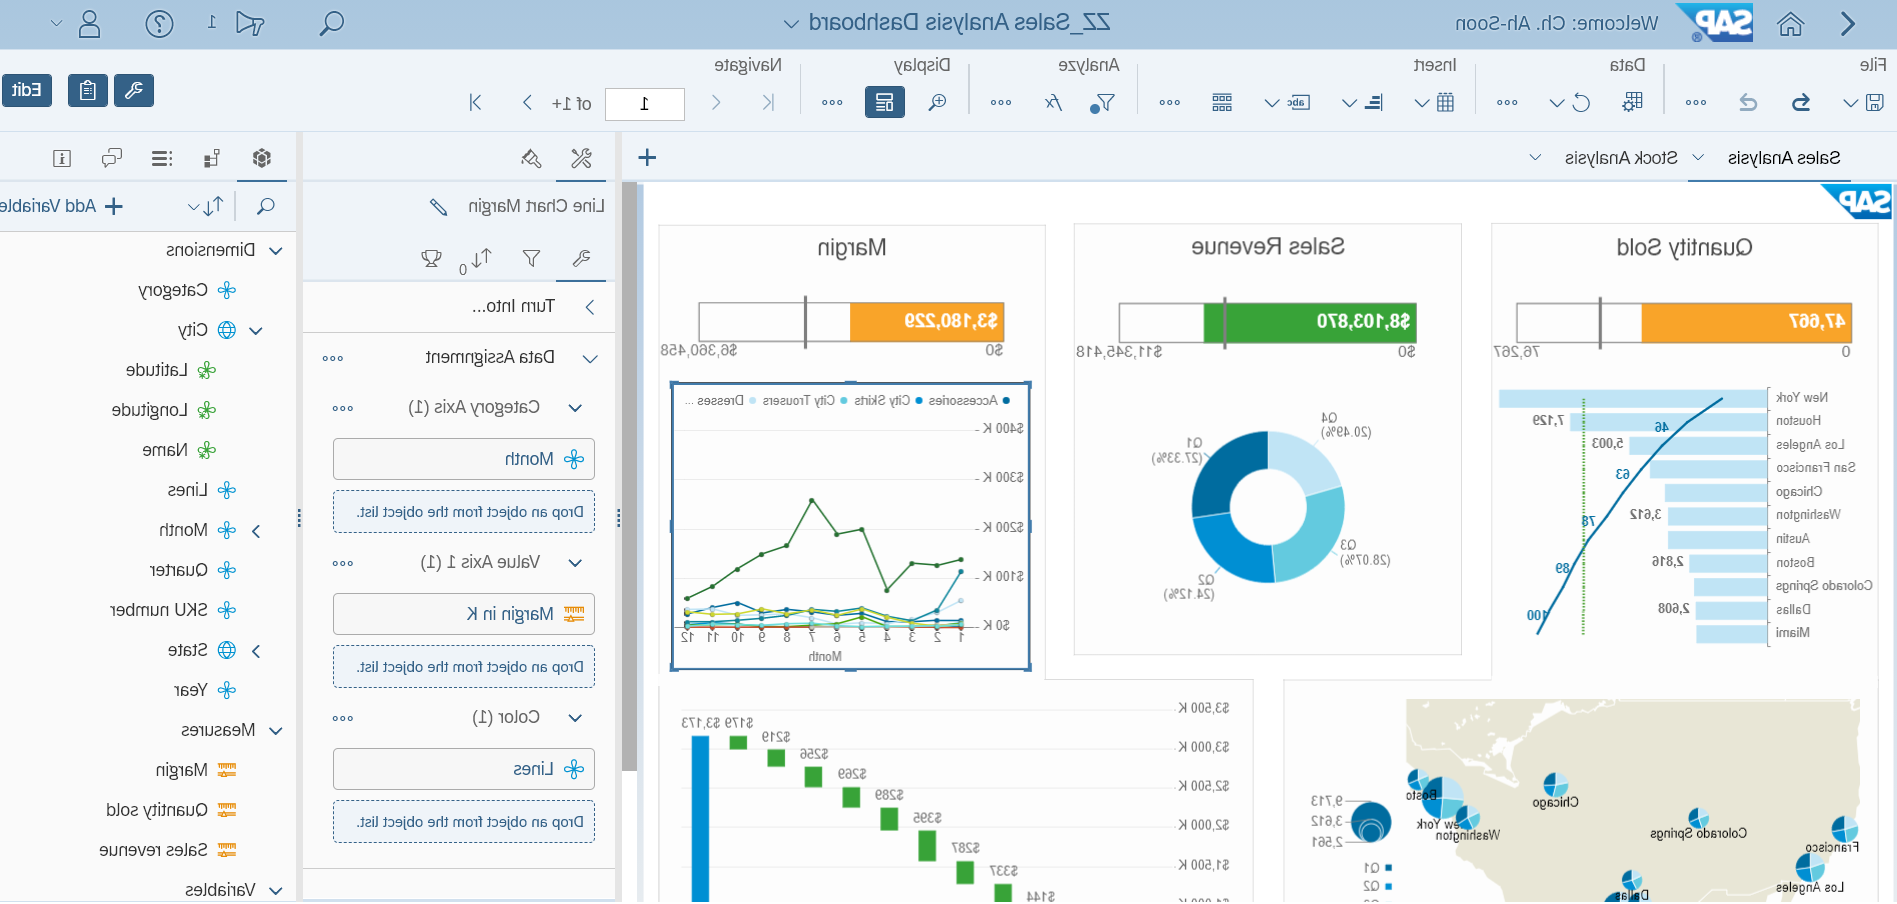 Is business intelligence the same as Business Objects?